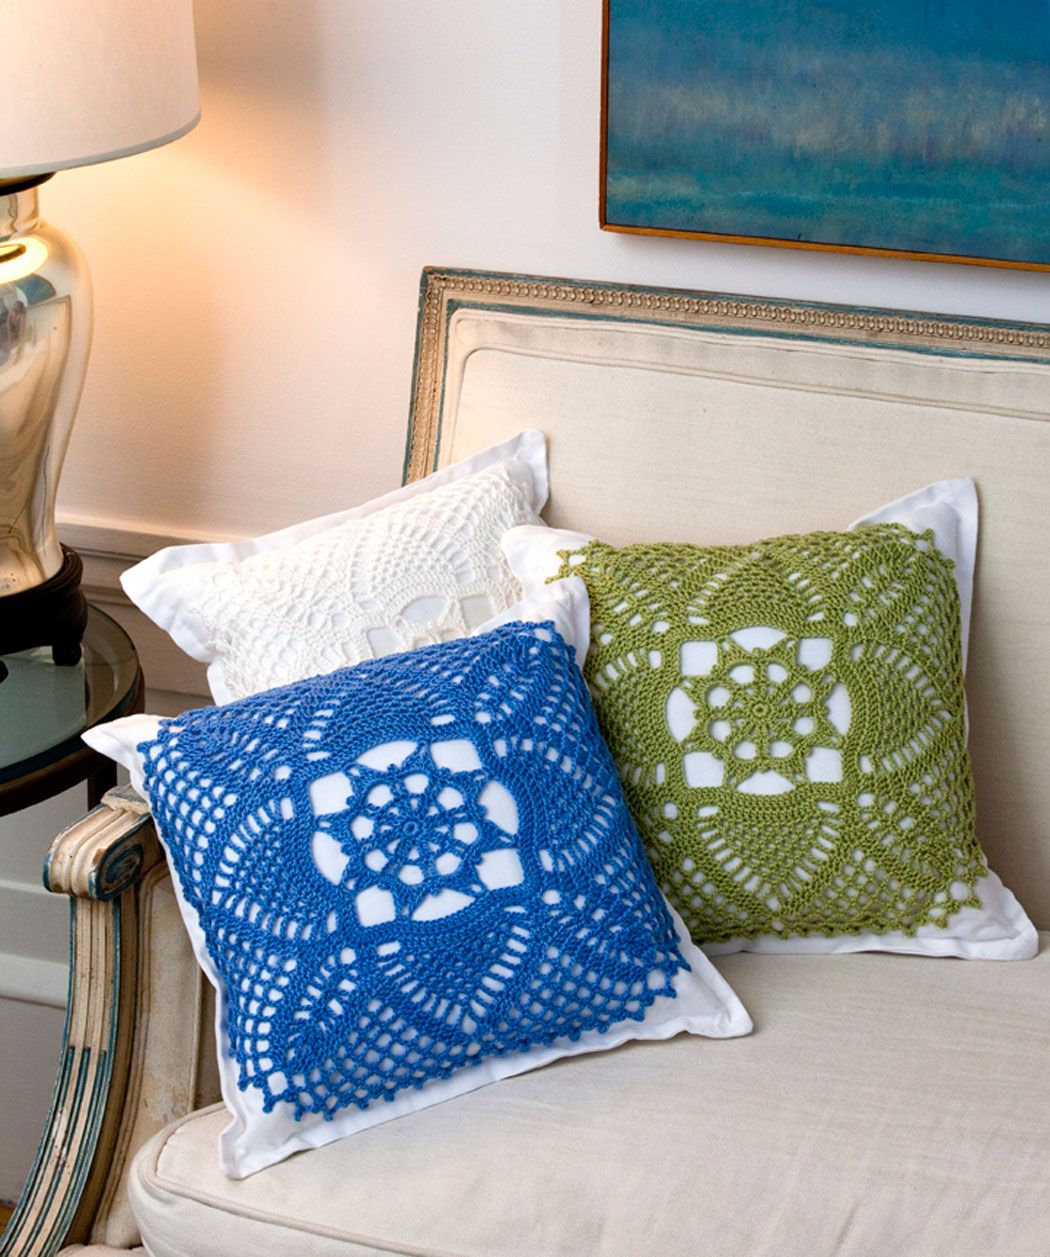 Pretty Pillows | red heart yarns free patterns | Pinterest | Polster ...